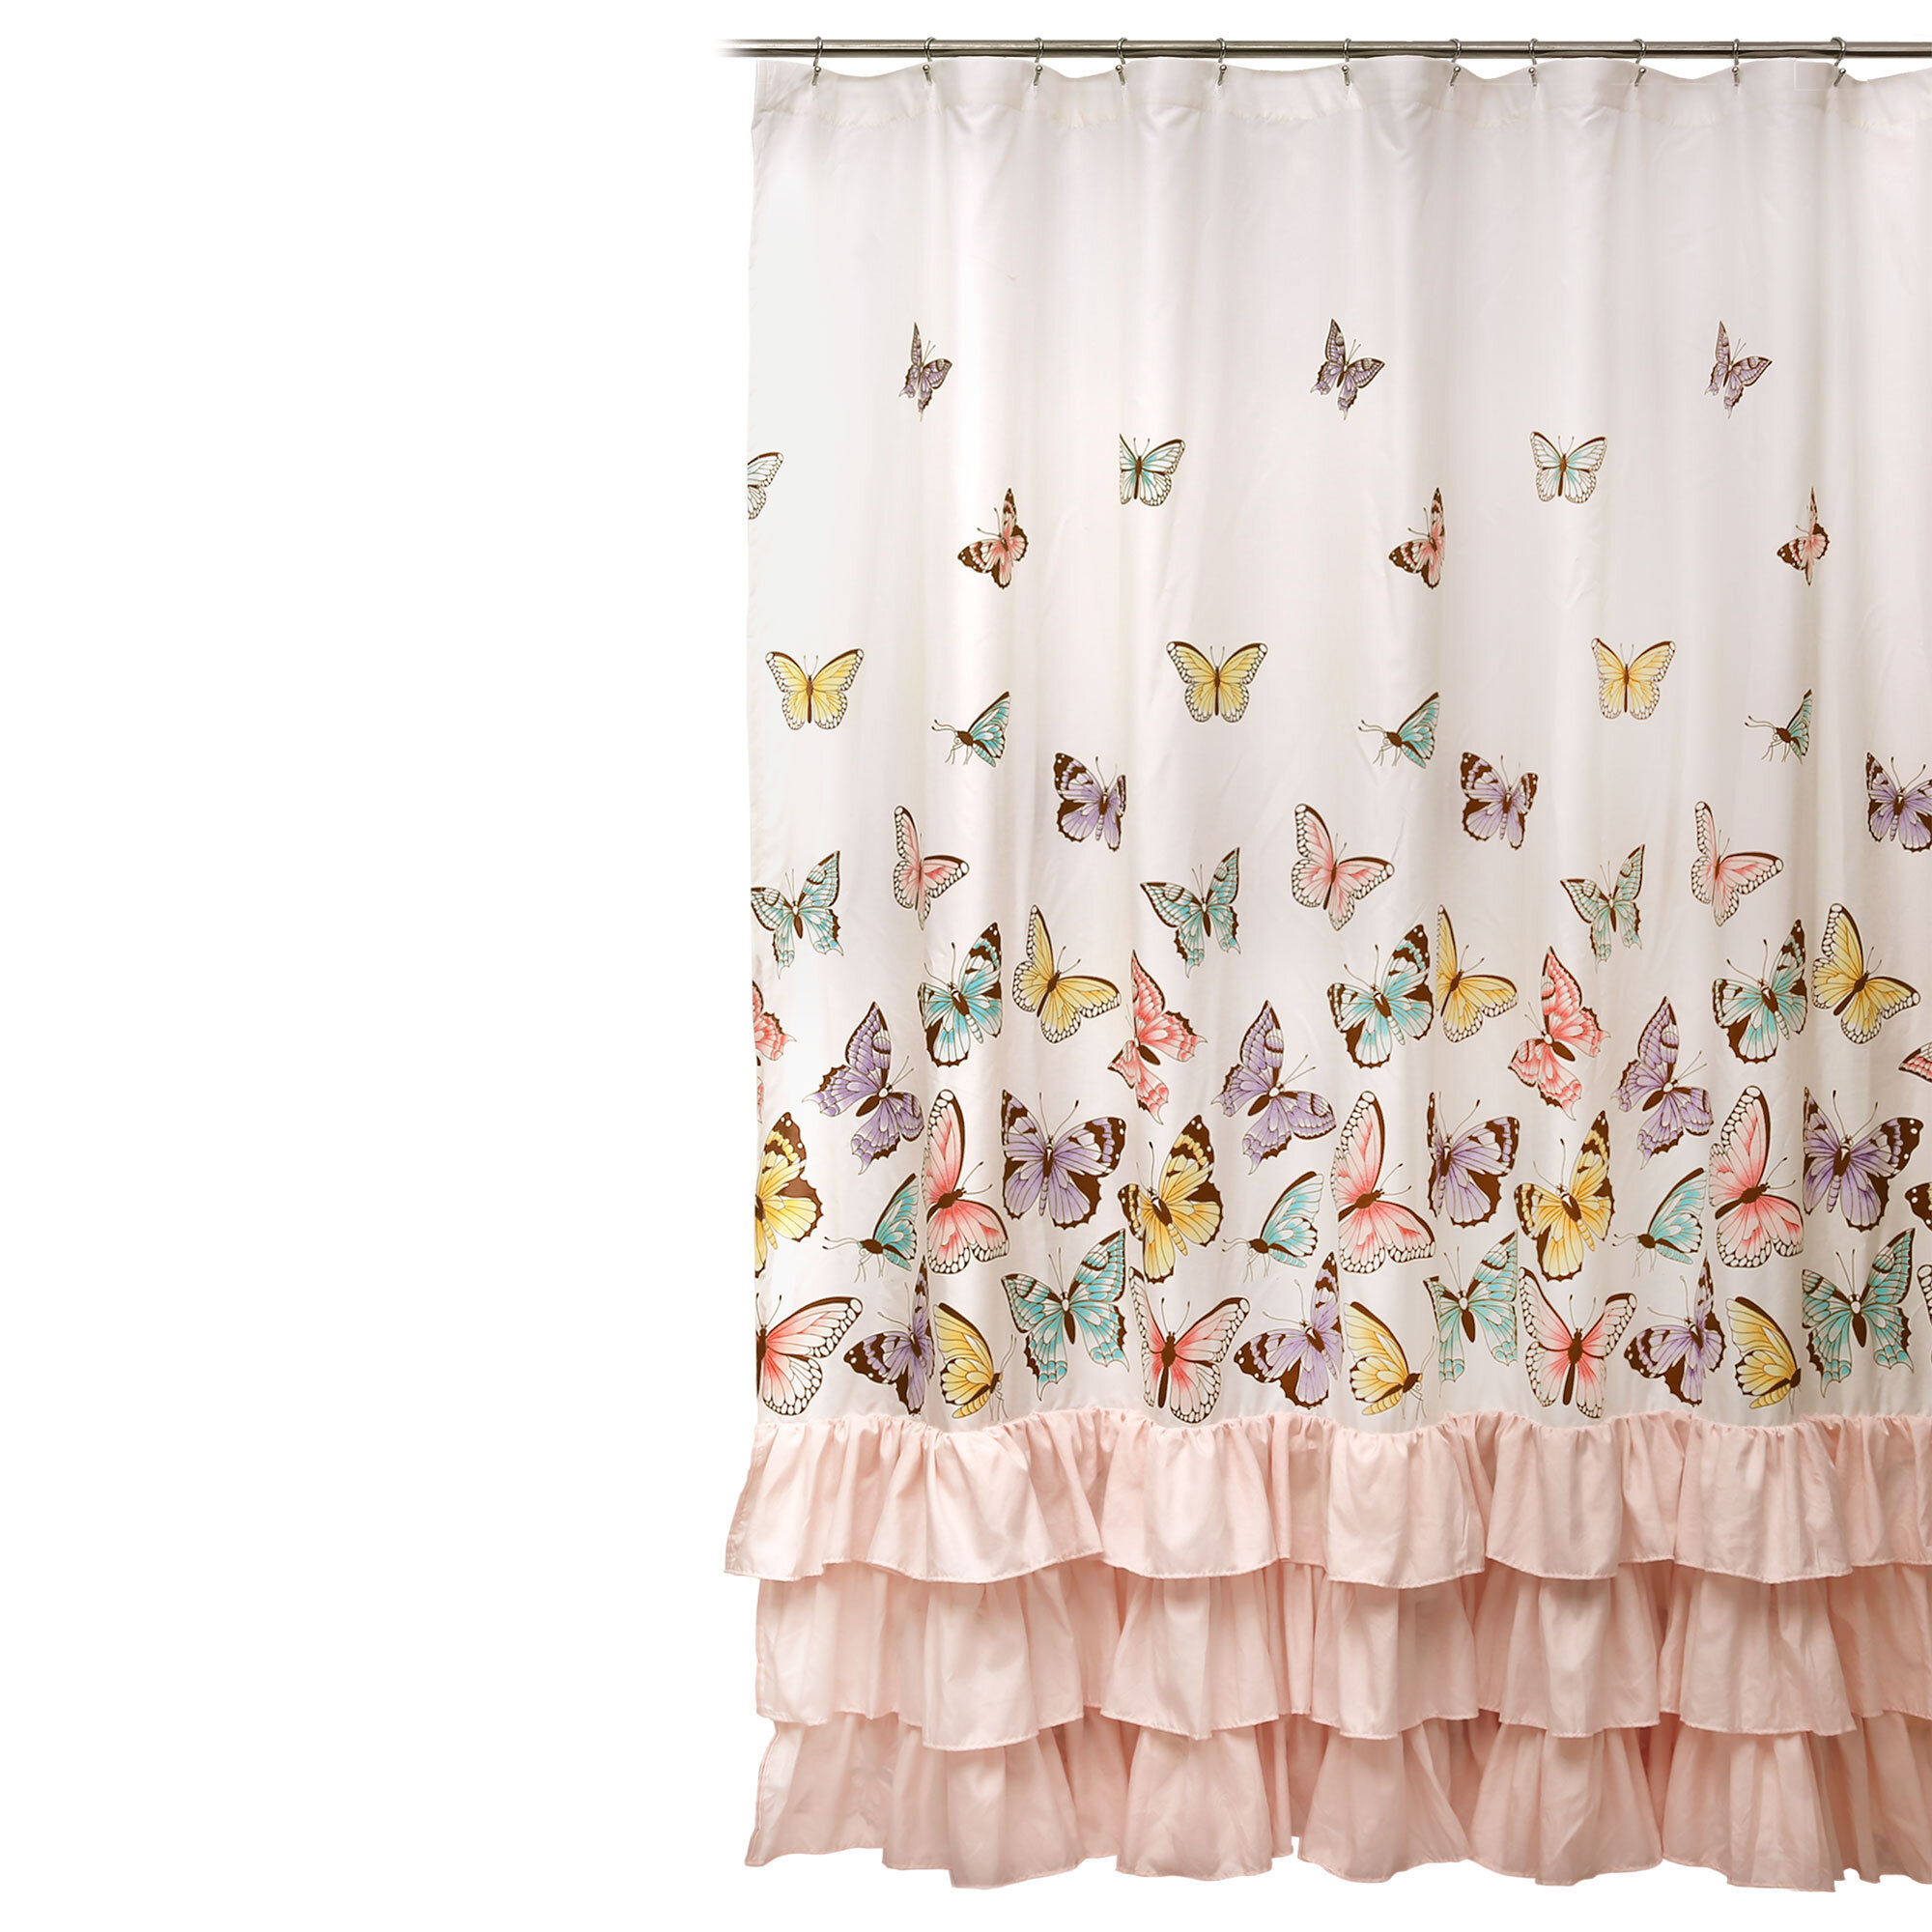 Ruffled Shower Curtains Shower Liners You Ll Love In 2021 Wayfair